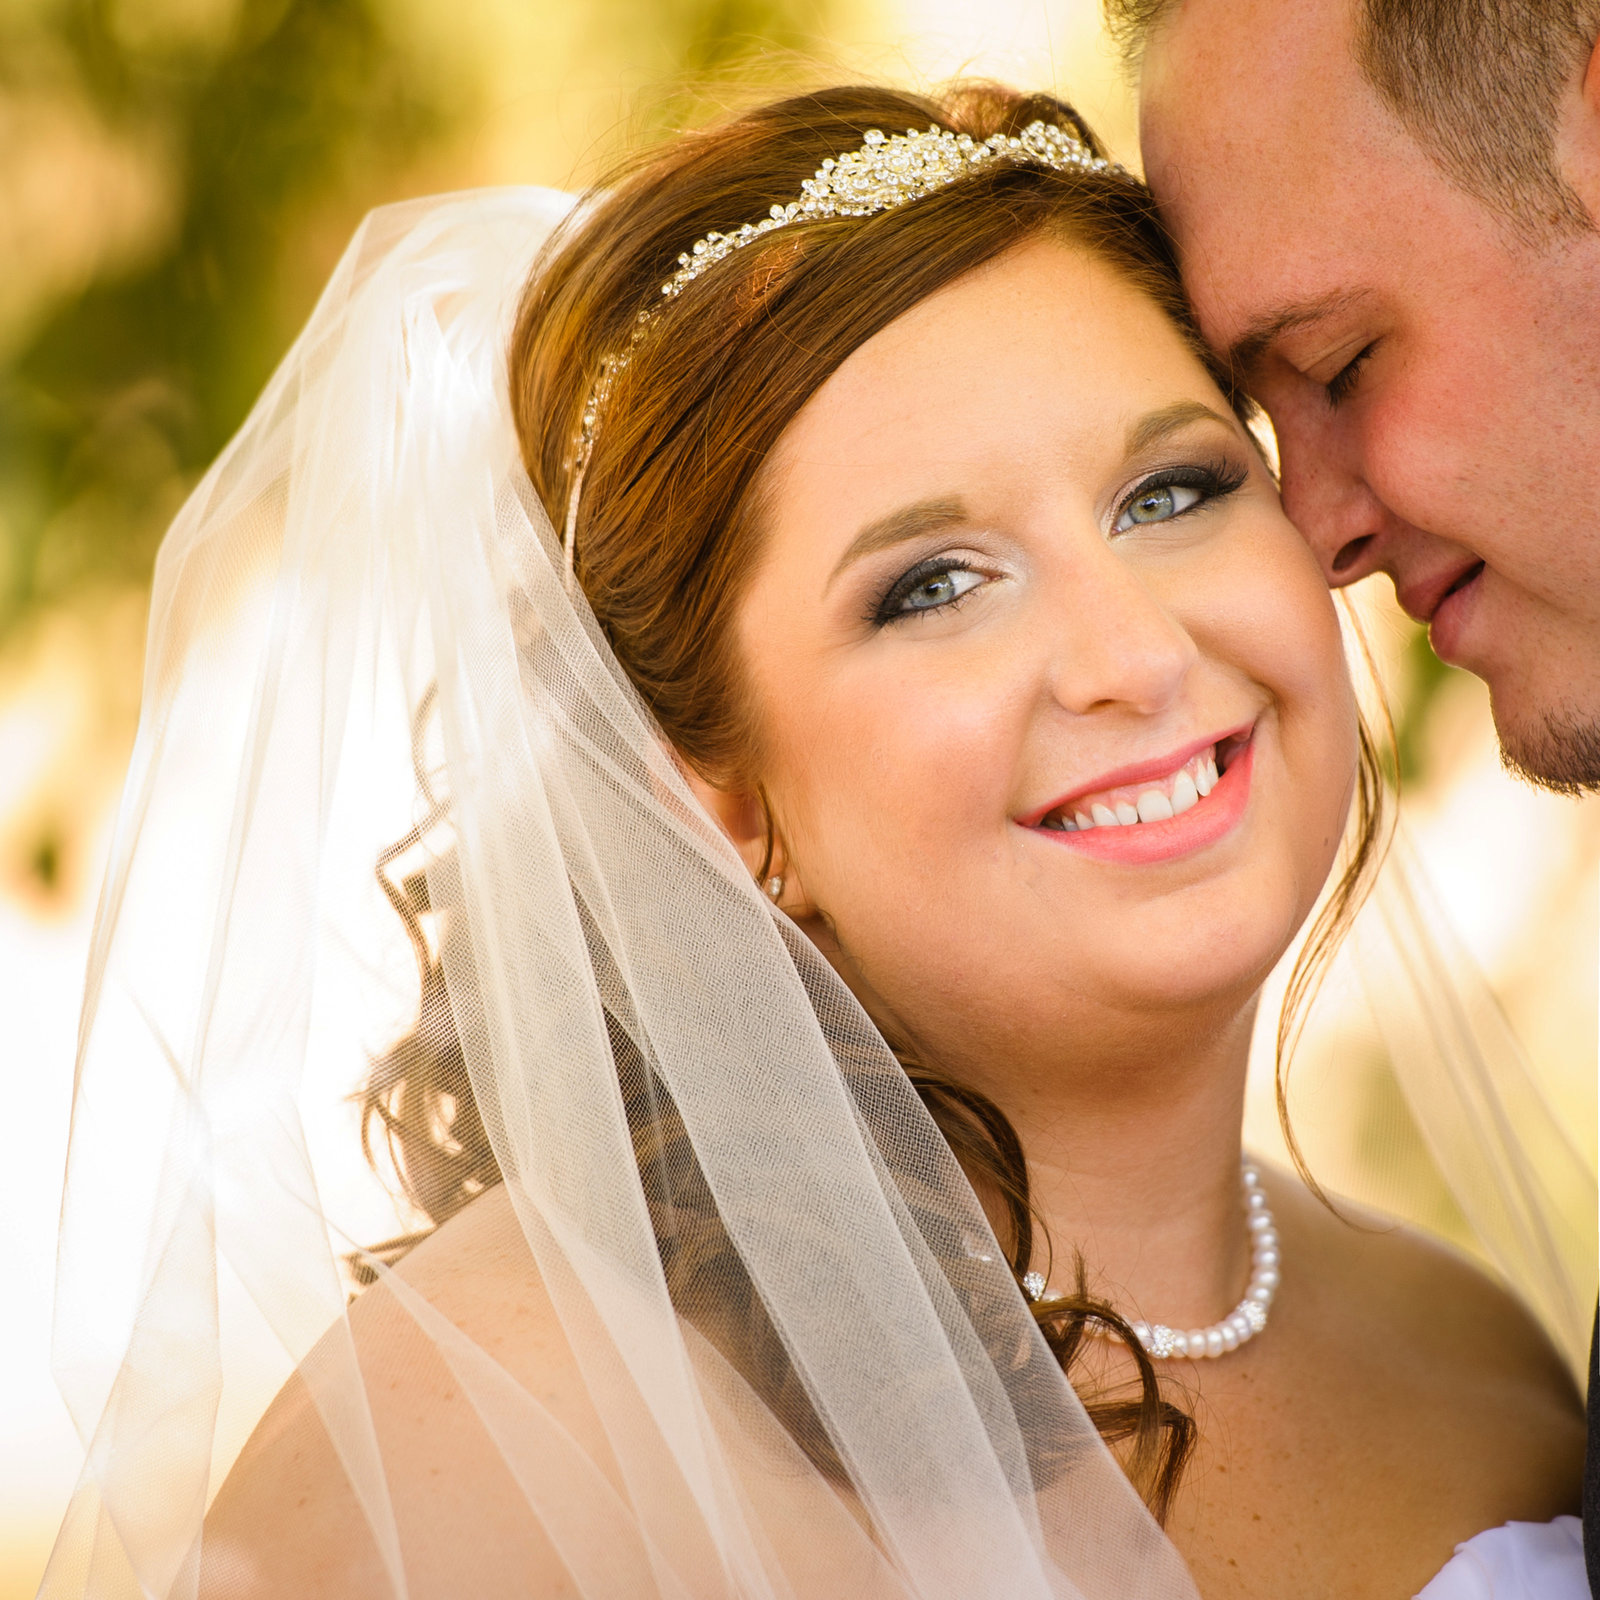 A bride smiles with her groom leaning on her after their wedding at Kickapoo Winery near Peoria, Illinois.